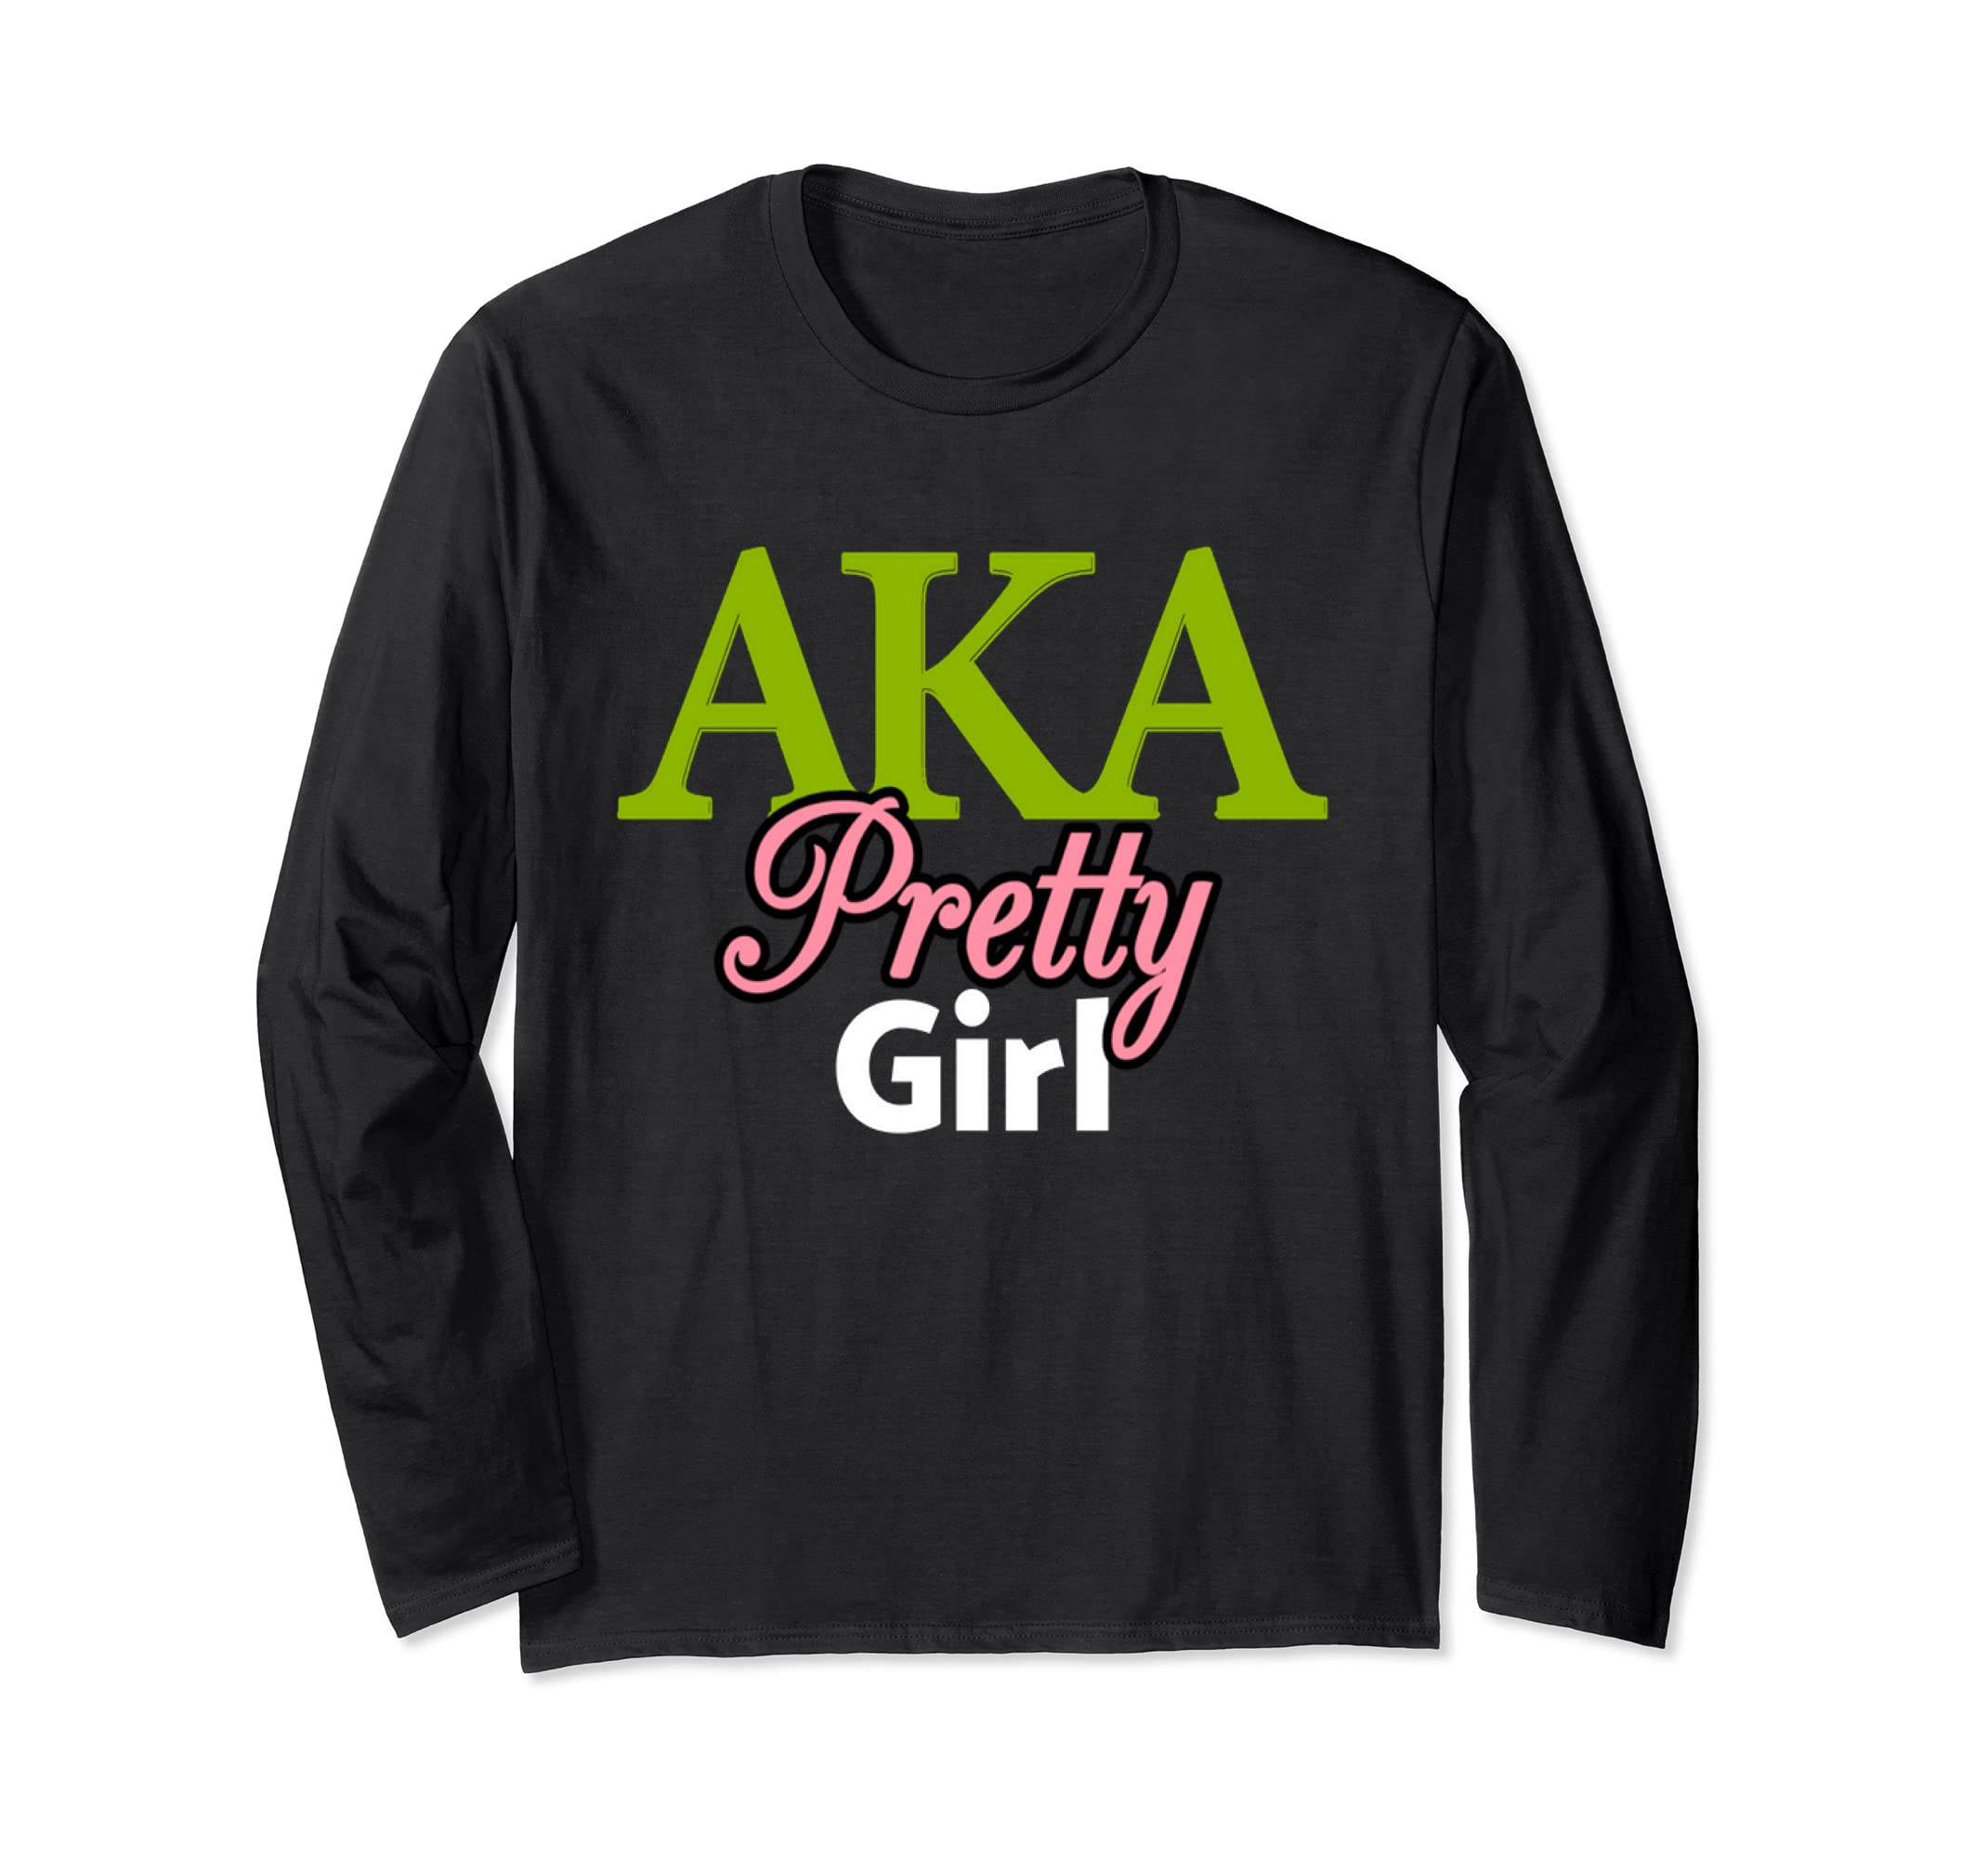 AKA Alpha Pretty Girl Kappa Sorority Pink and Green Shirt-Rose